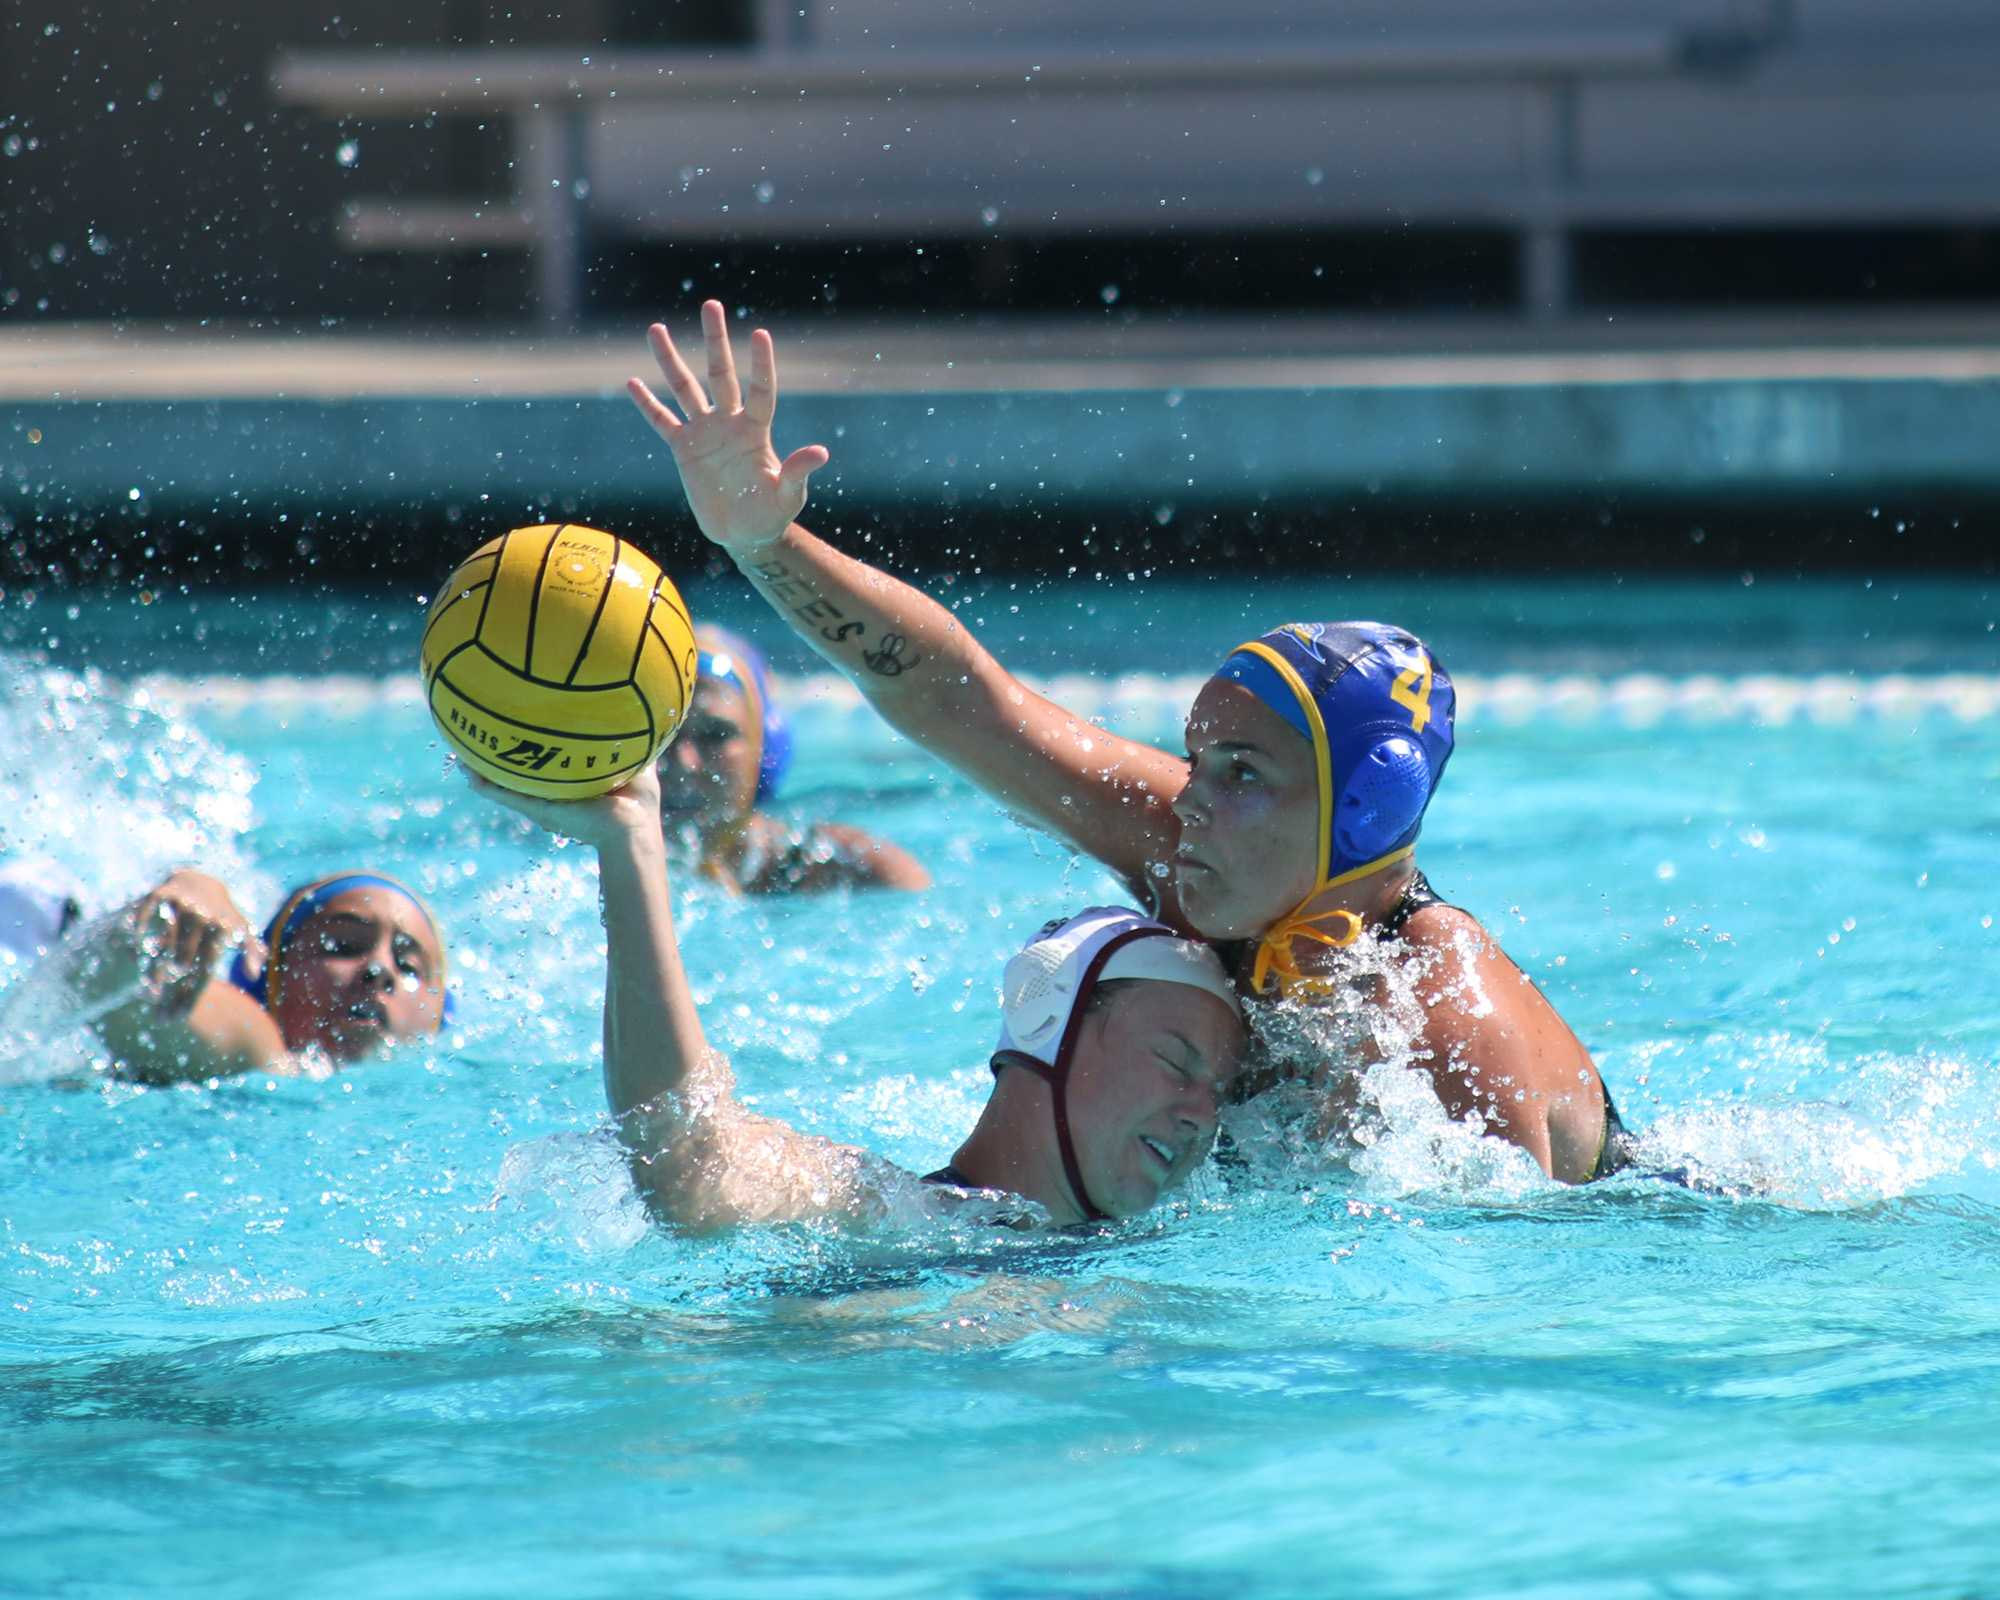 UCLA Womens Water Polo loses to Stanford 7-6 in the NCAA